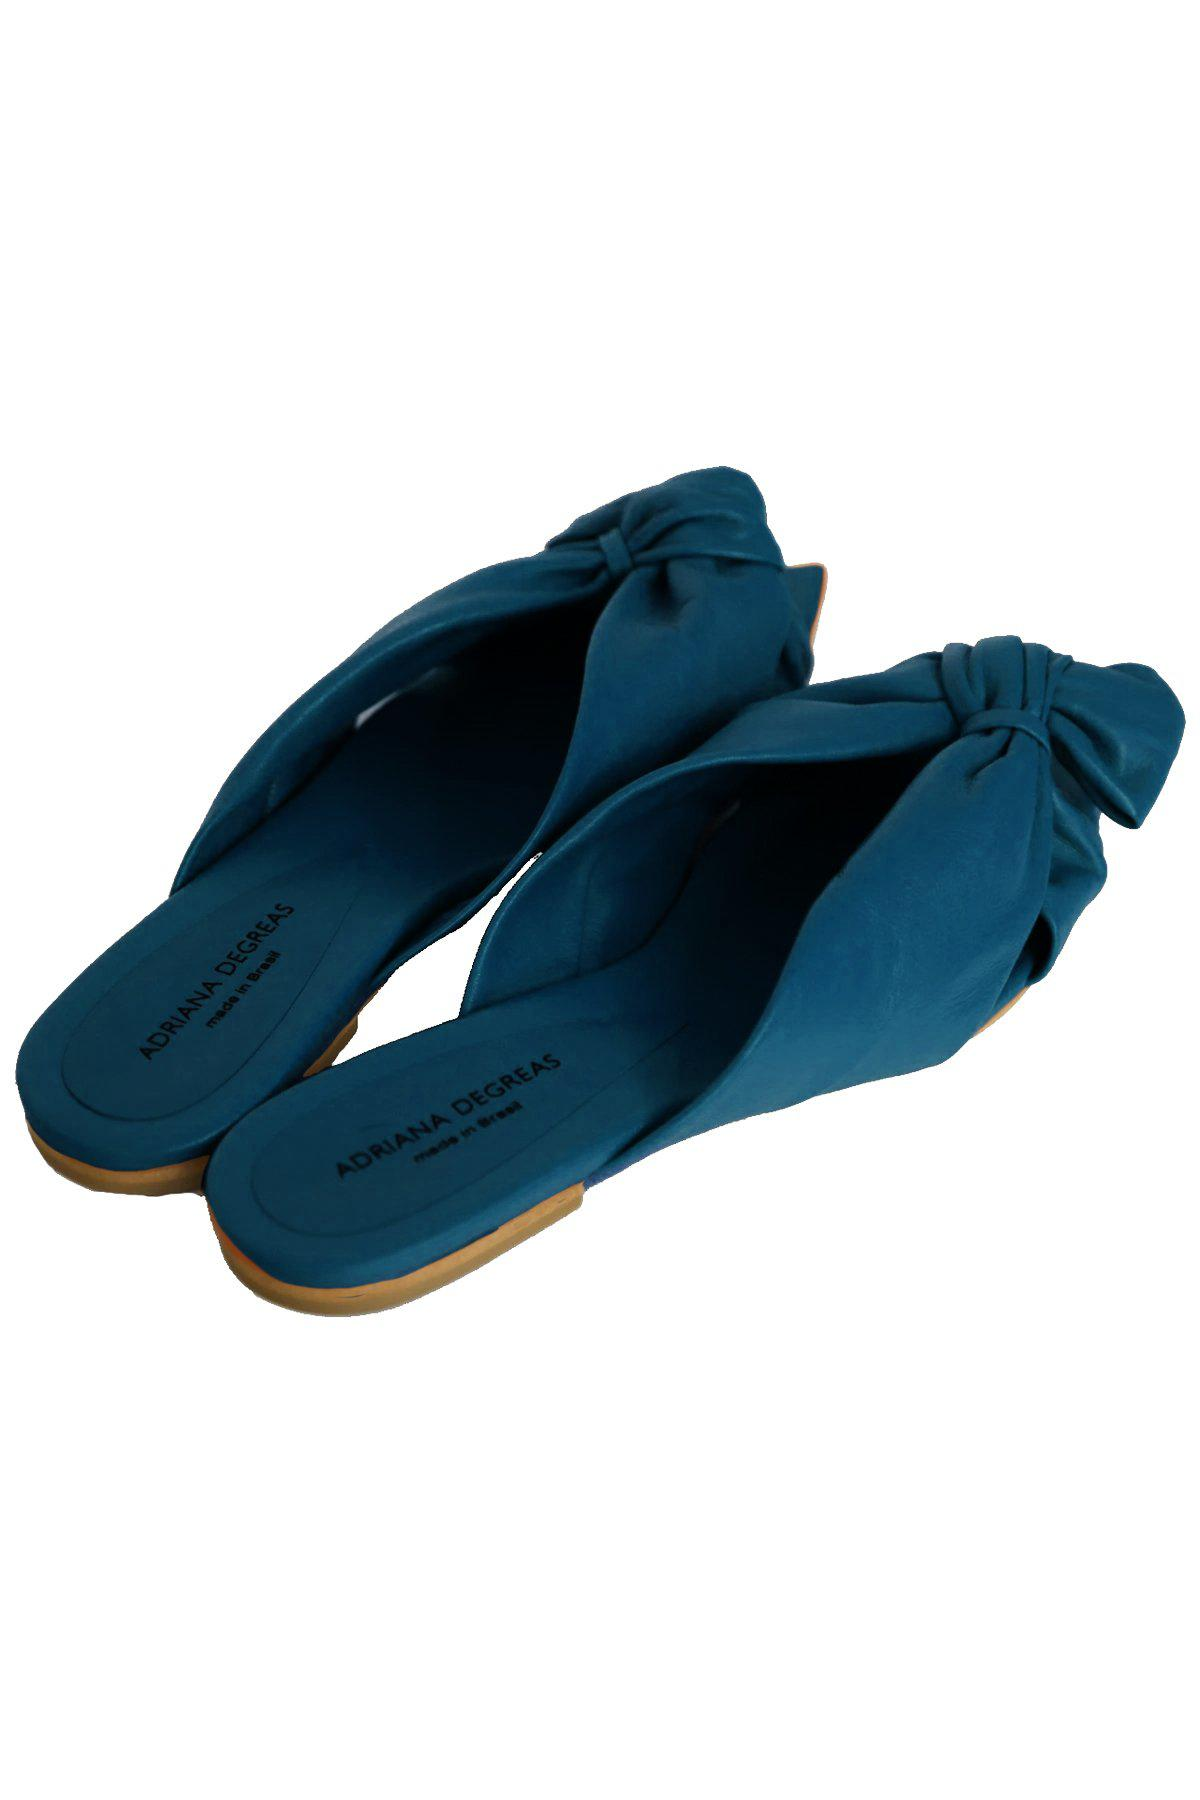 Turquoise Flat Sandals With Knot Detail